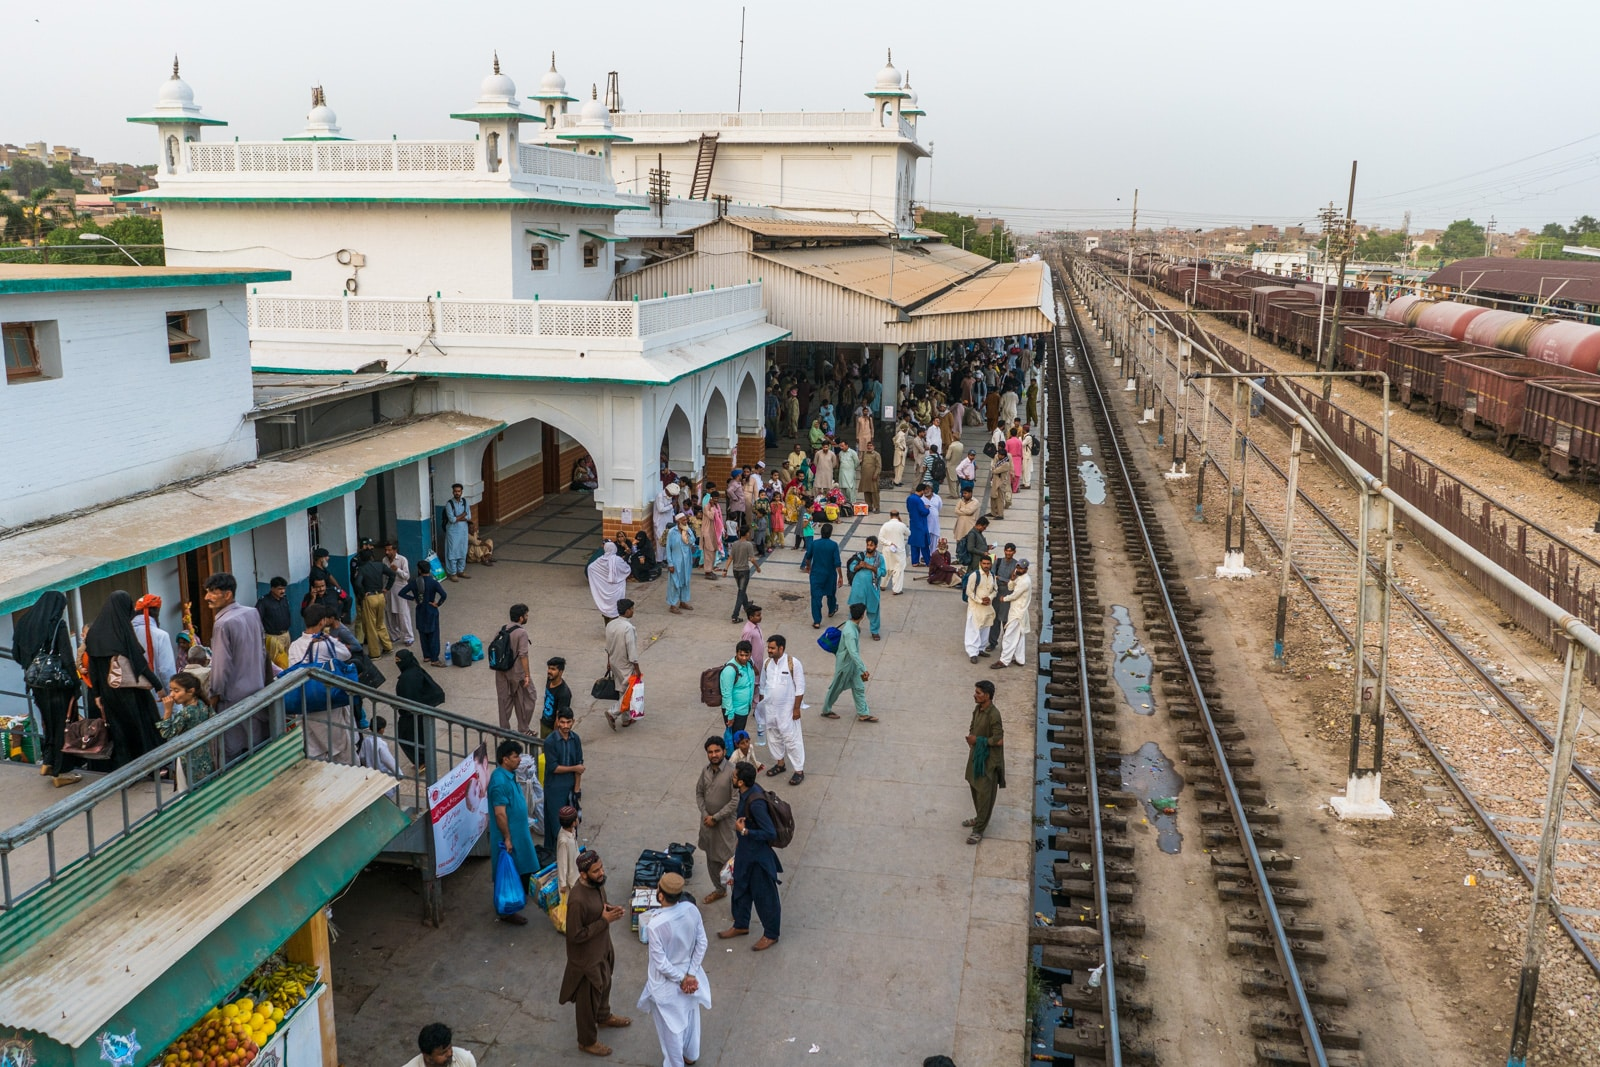 Passengers waiting for train at a train station in Hyderabad, Sindh, Pakistan